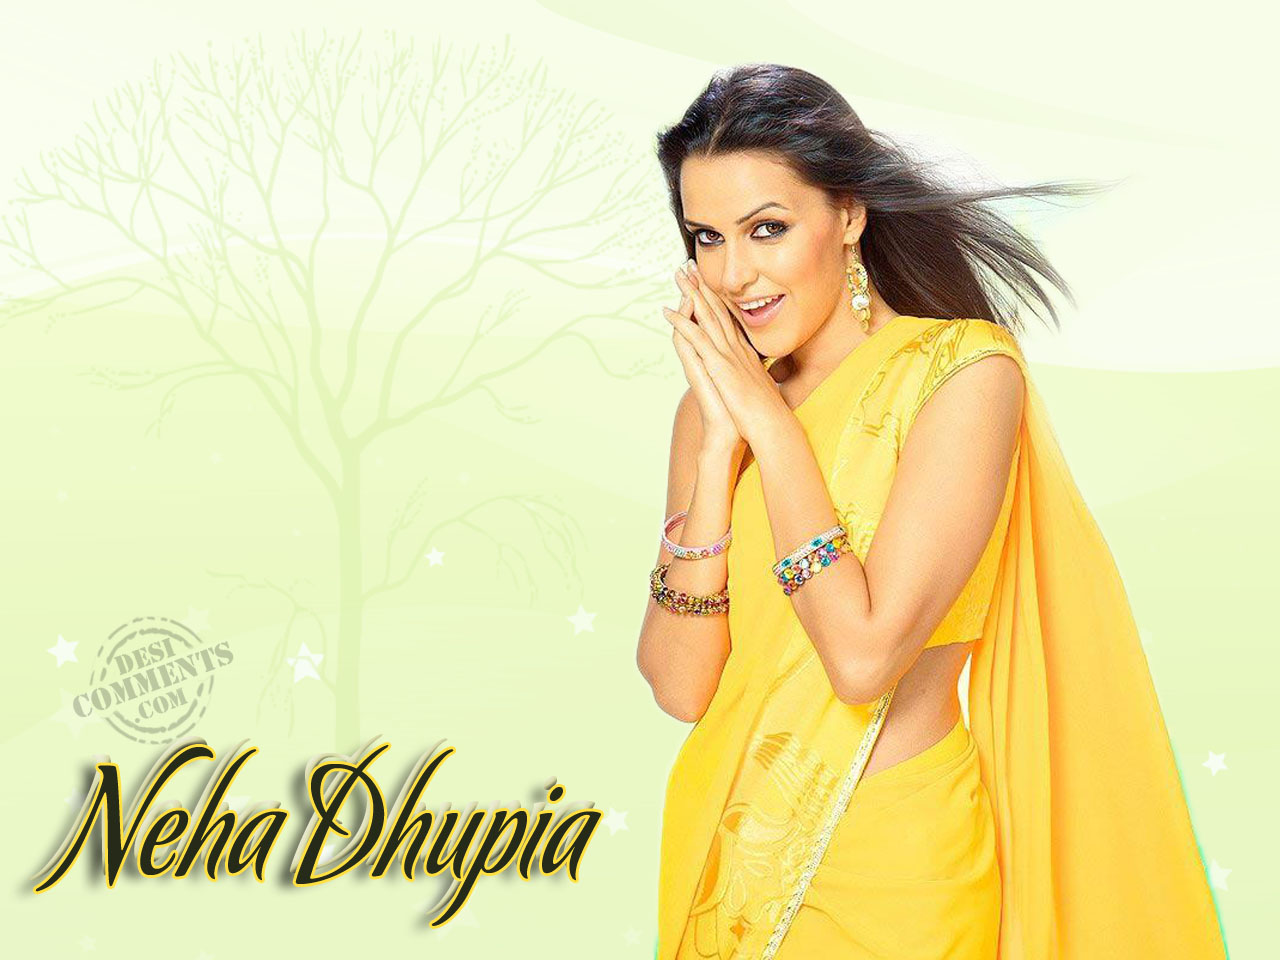 Wonderful Wallpaper Name Neha - Neha-Dhupia-Wallpaper-10  Perfect Image Reference_113110.jpg